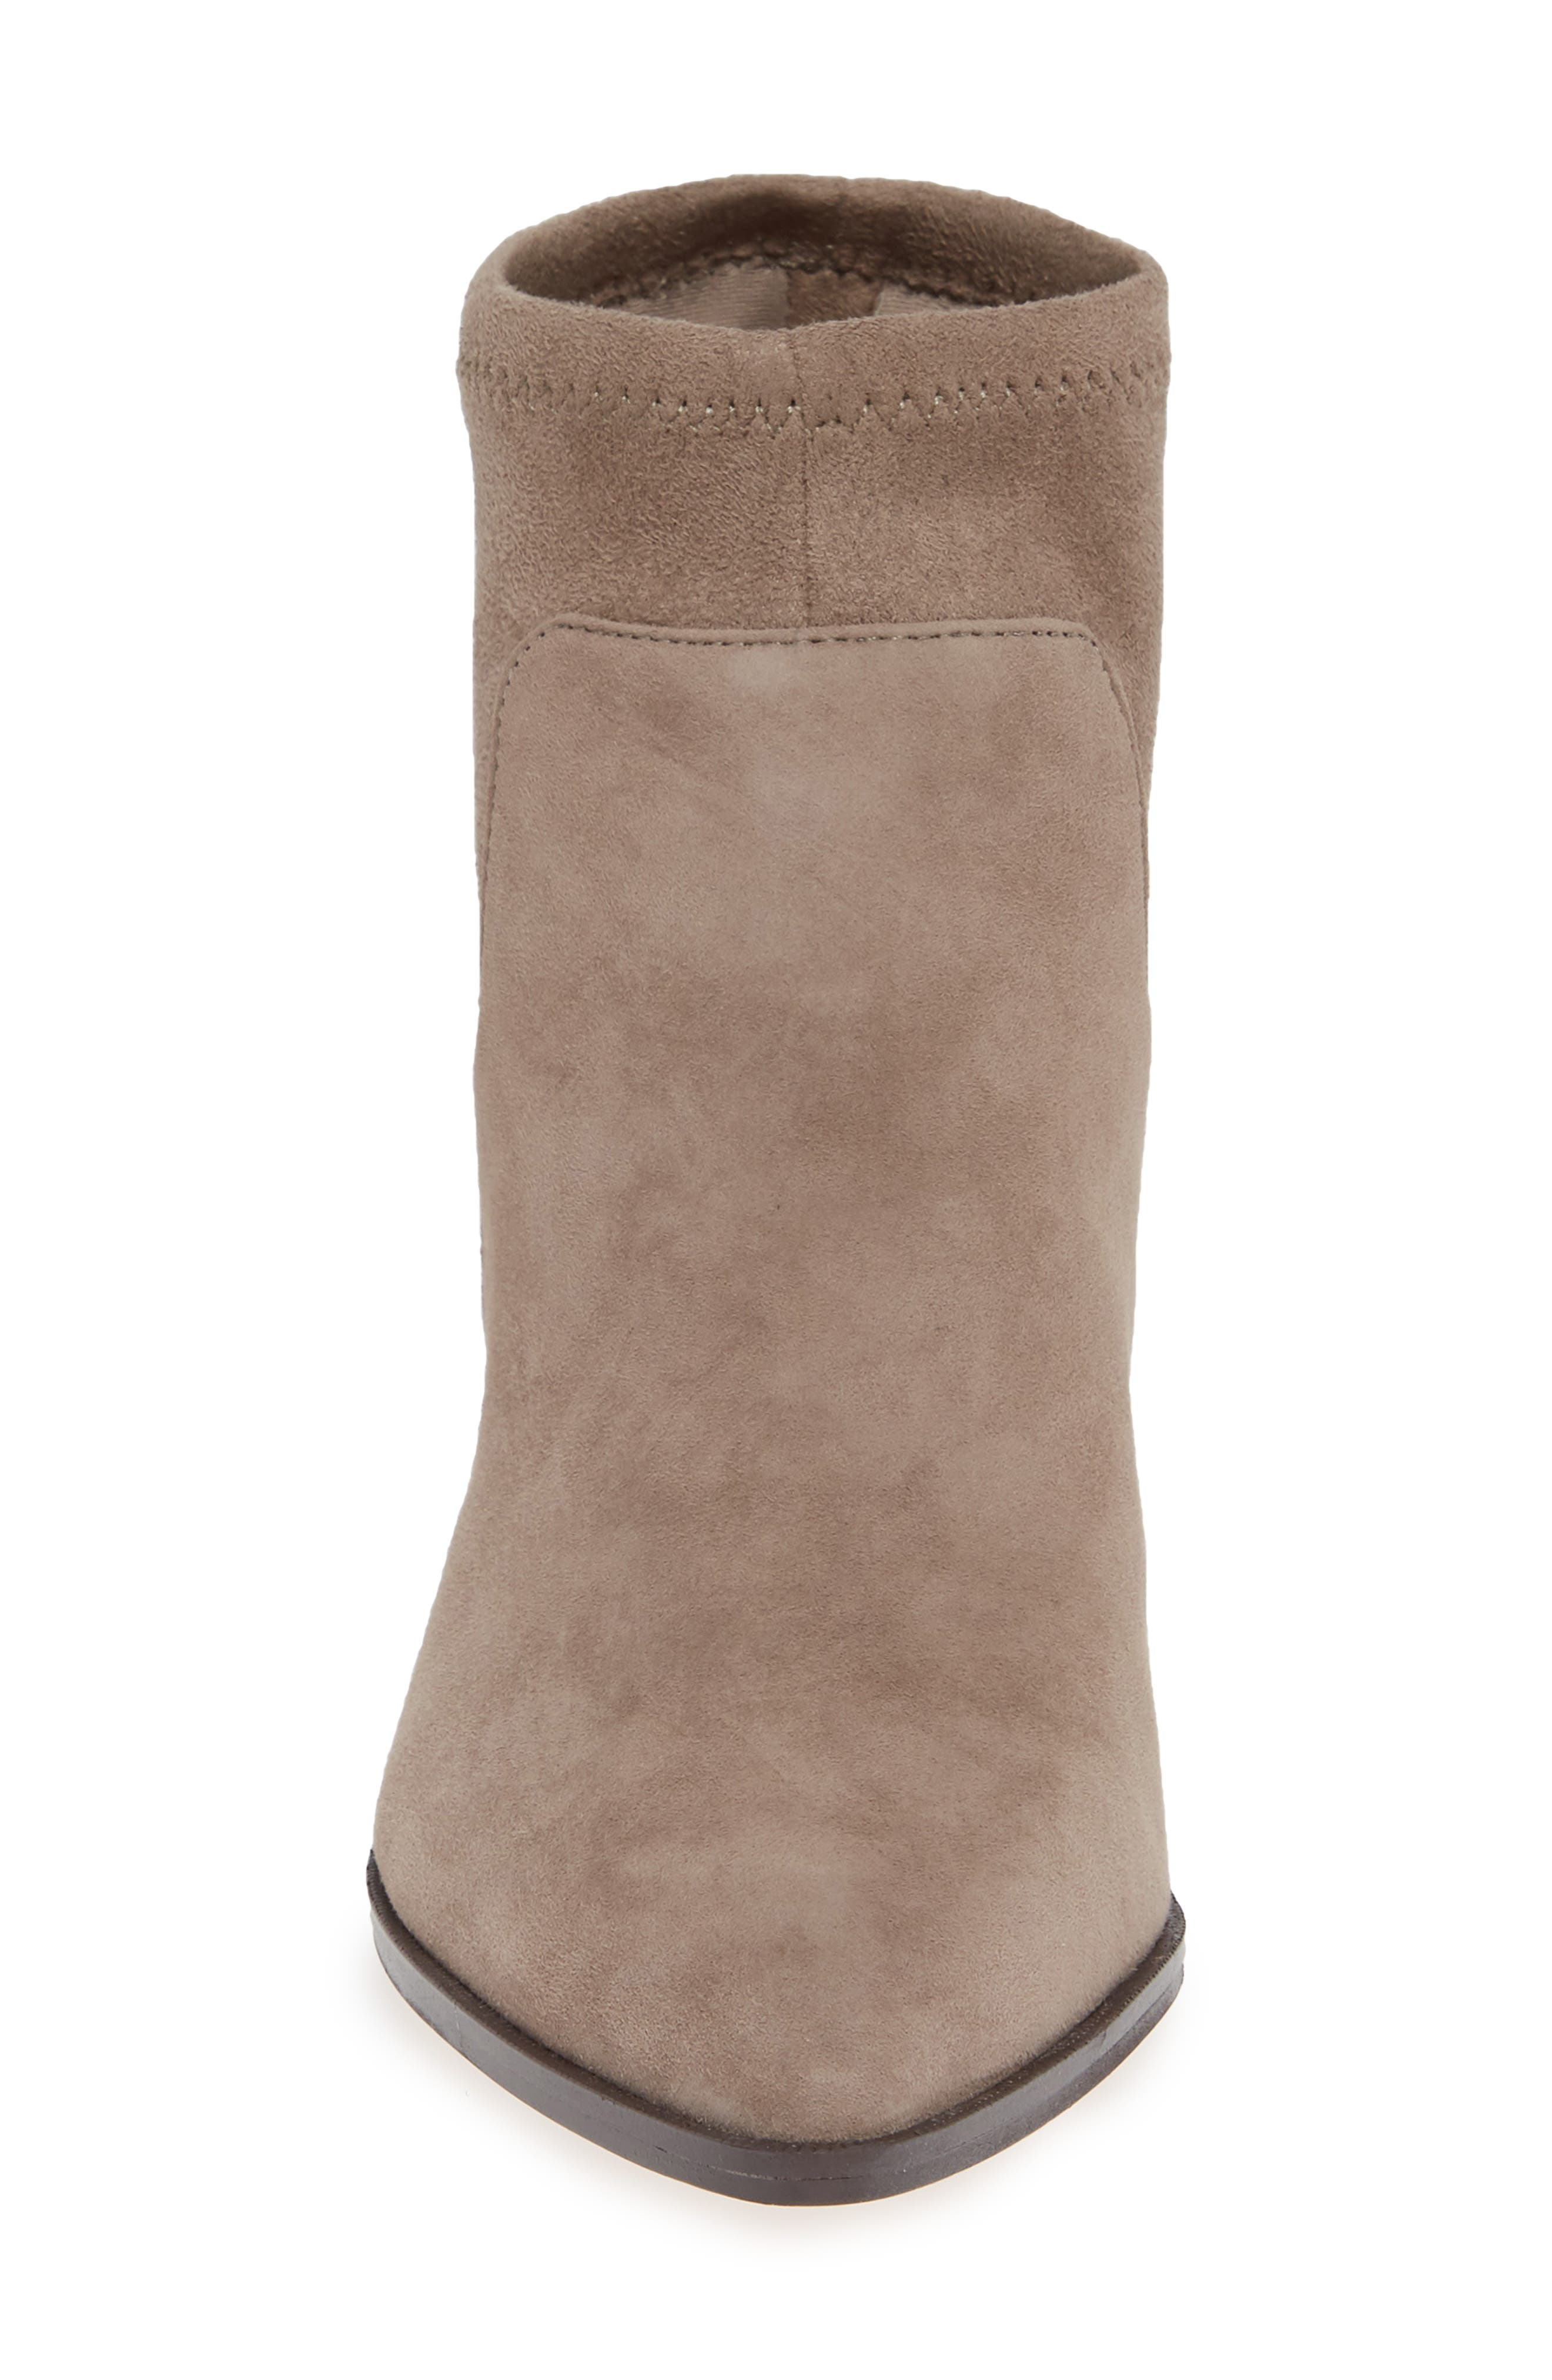 SOLE SOCIETY, Dawnina Bootie, Alternate thumbnail 4, color, PORCINI SUEDE